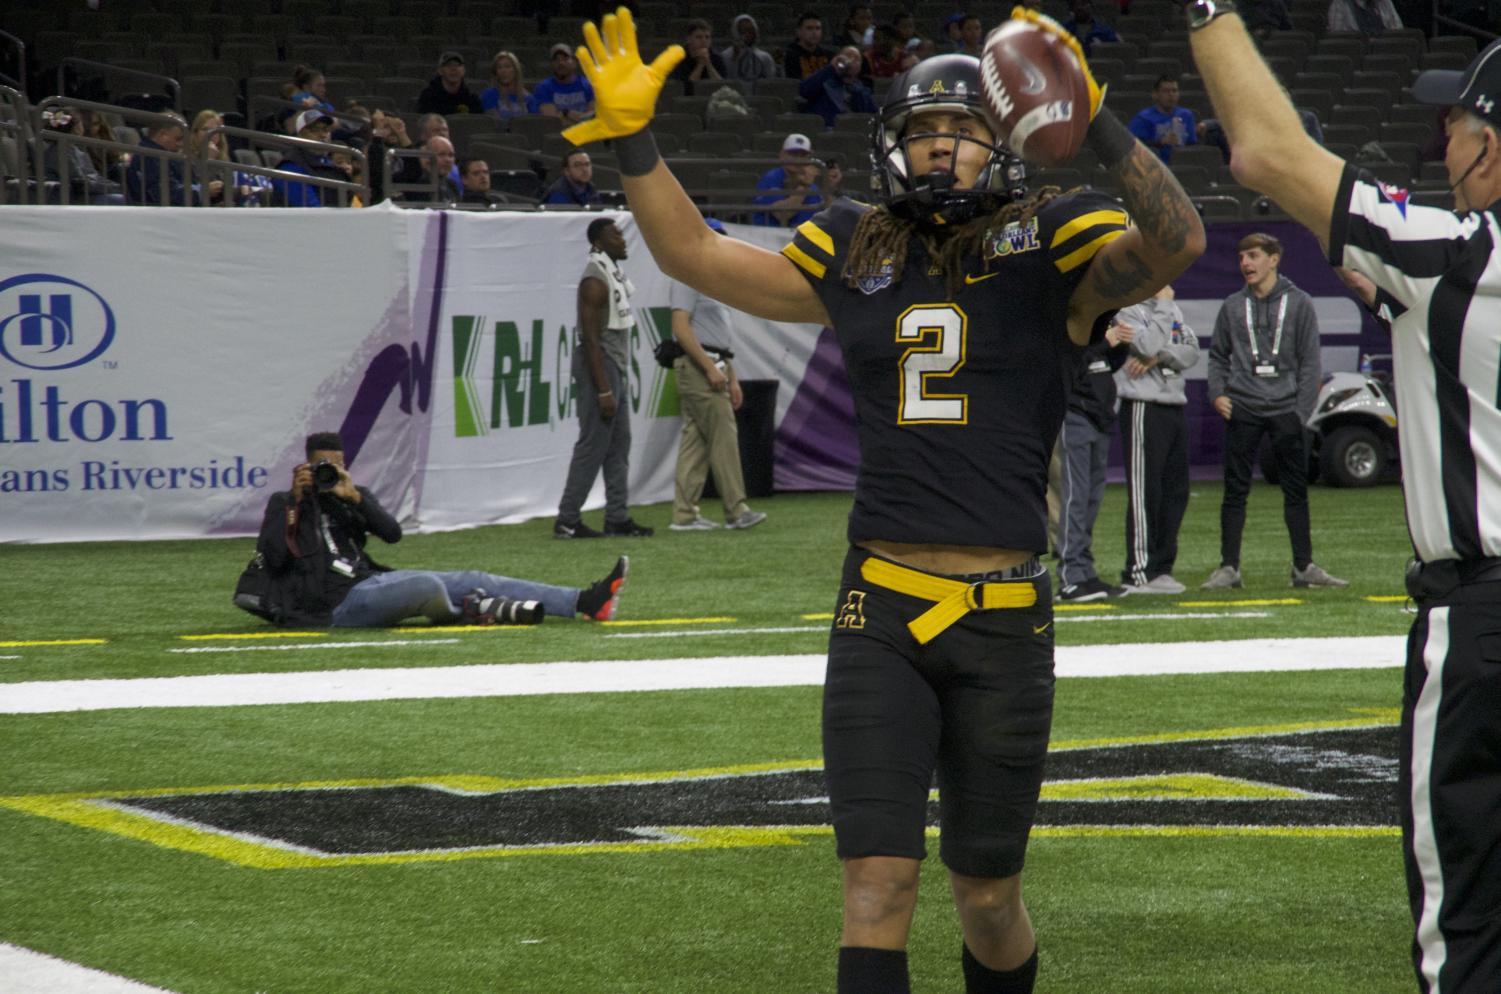 Junior wide receiver Corey Sutton celebrates after scoring a touchdown against Middle Tennessee at the New Orleans Bowl on Dec. 15.